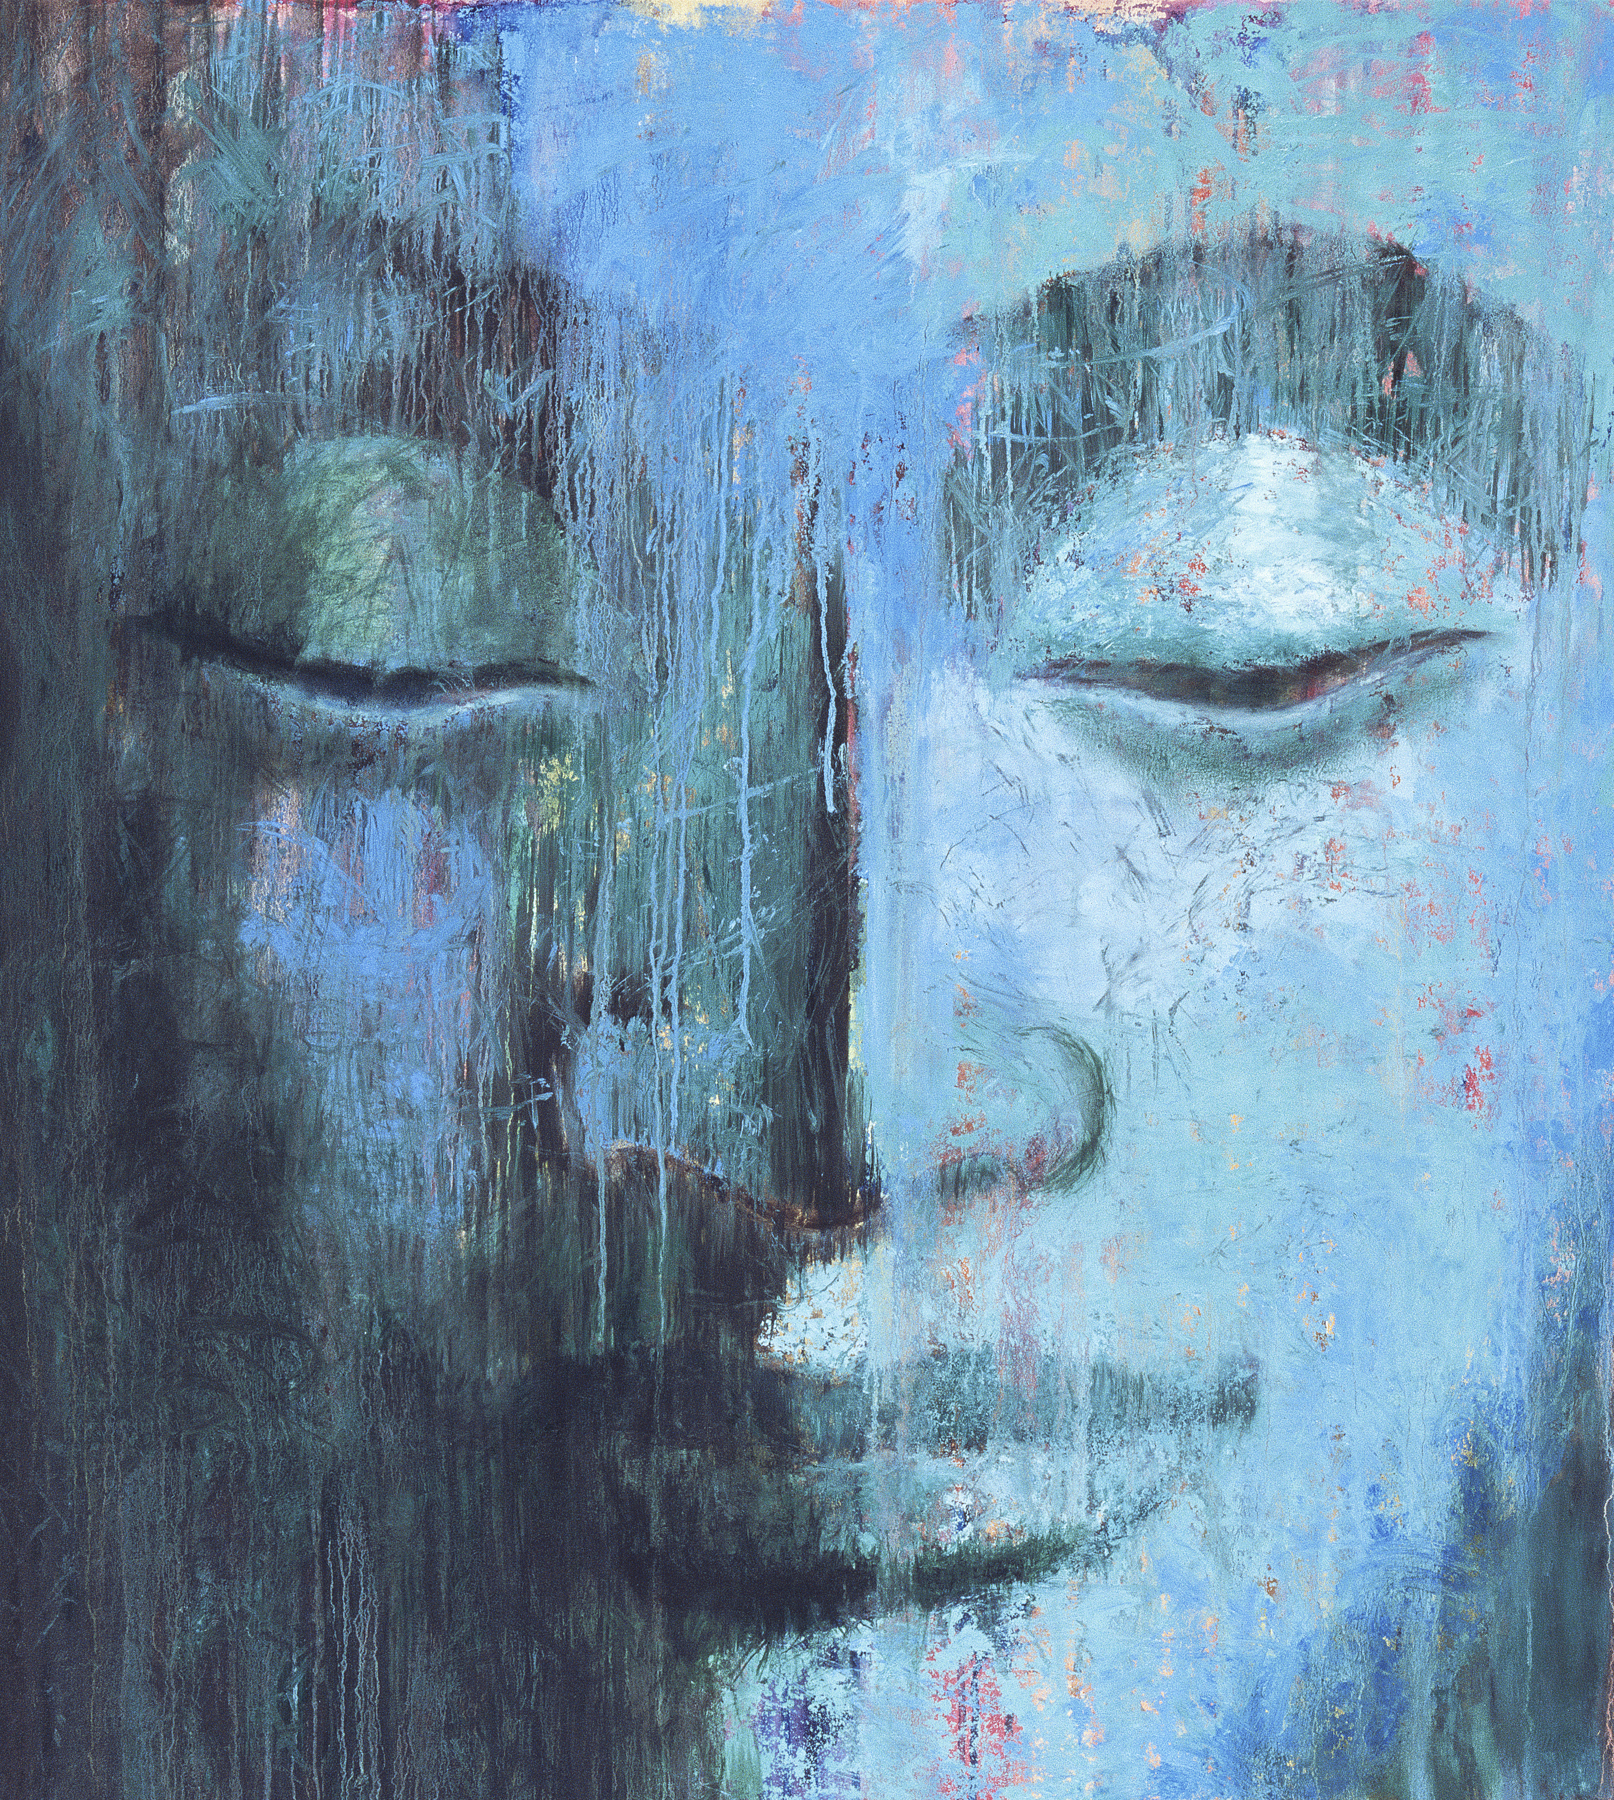 Peck_Virginia_Blue_Rain_Buddha_2005.jpg